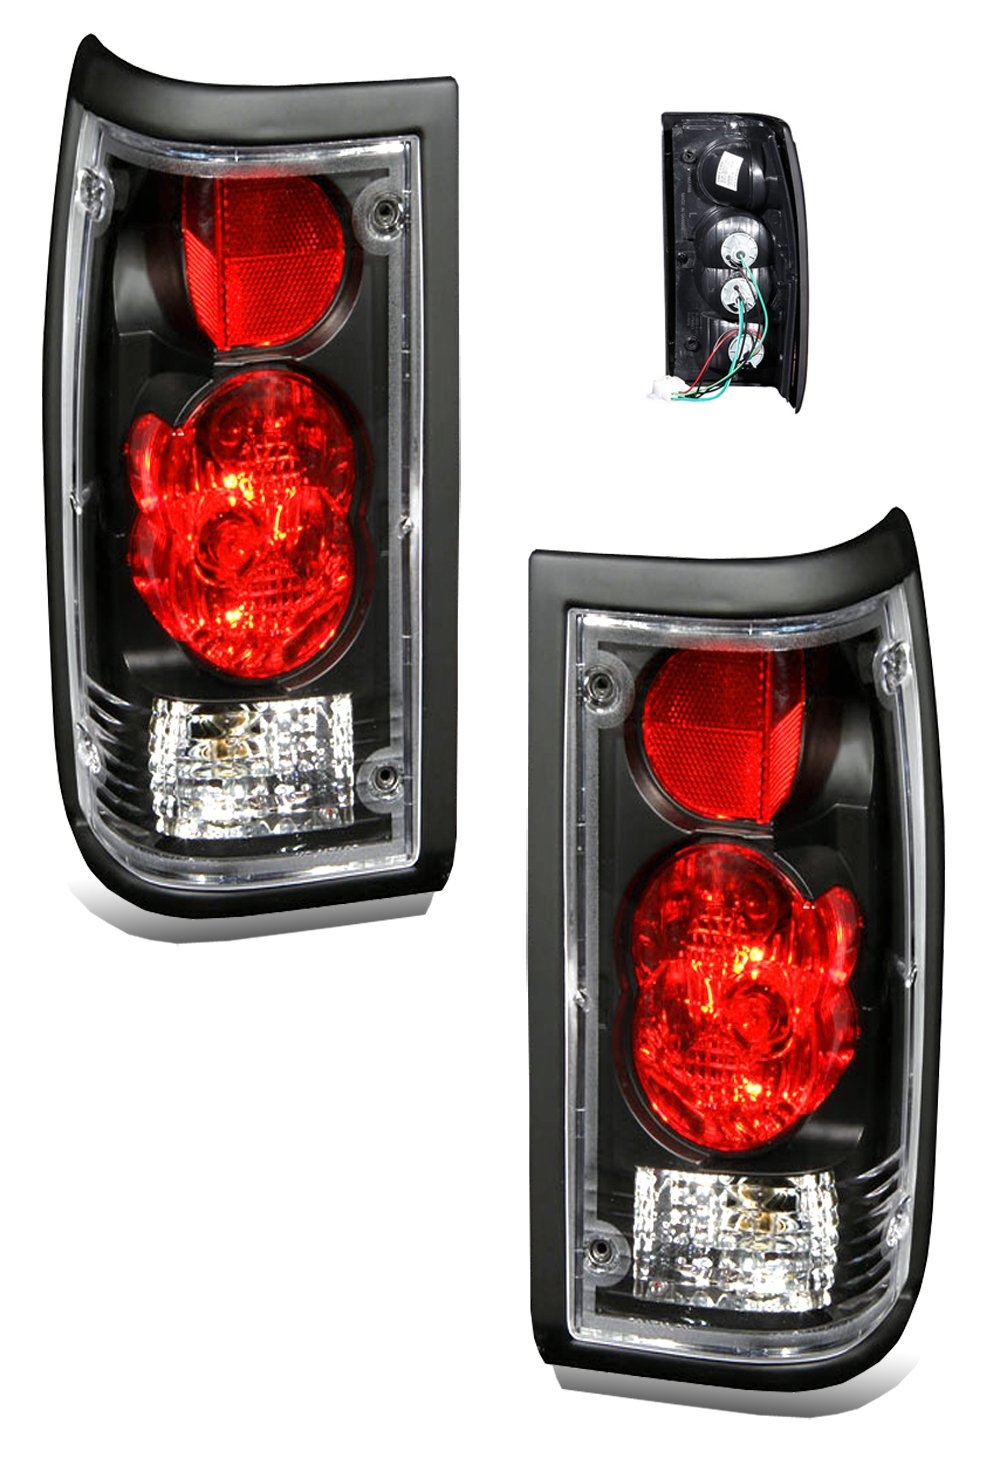 Amazon.com: SPPC Black Euro Tail Lights Assembly Set For Mazda B2000 -  (Pair) Driver Left and Passenger Right Side Replacement: Automotive